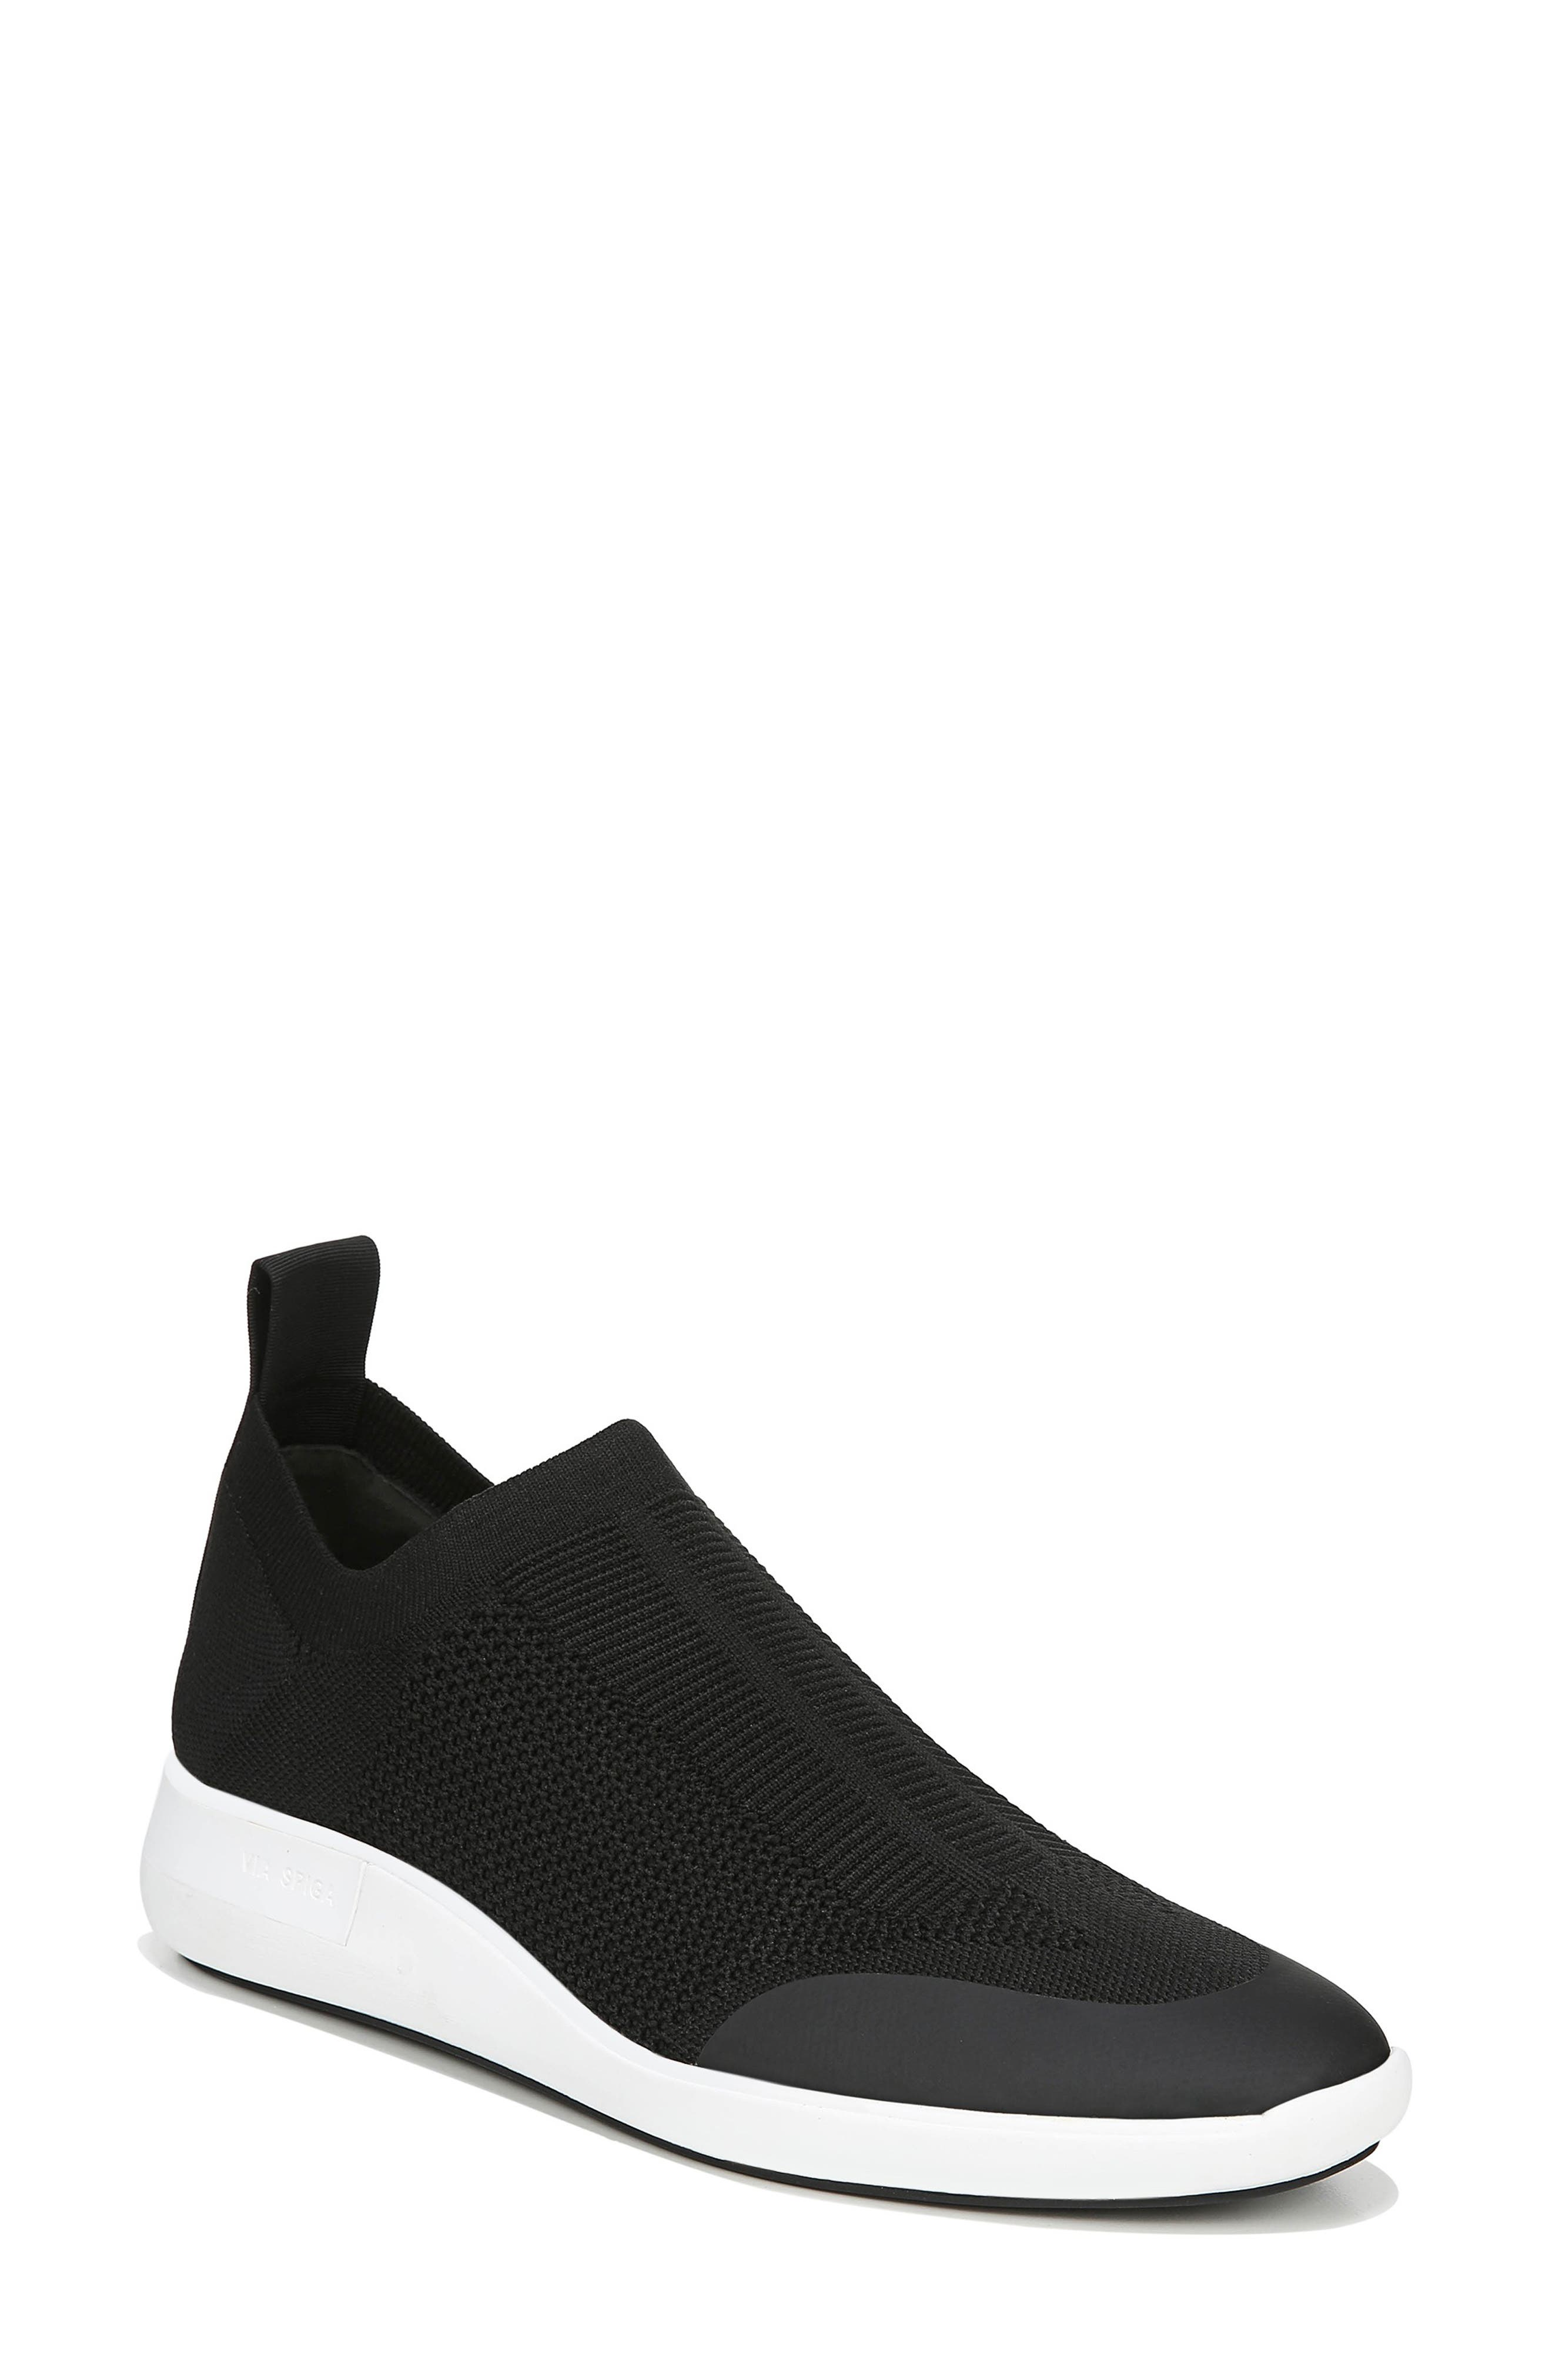 Women'S Marlow 5 Slip-On Sneakers in Black